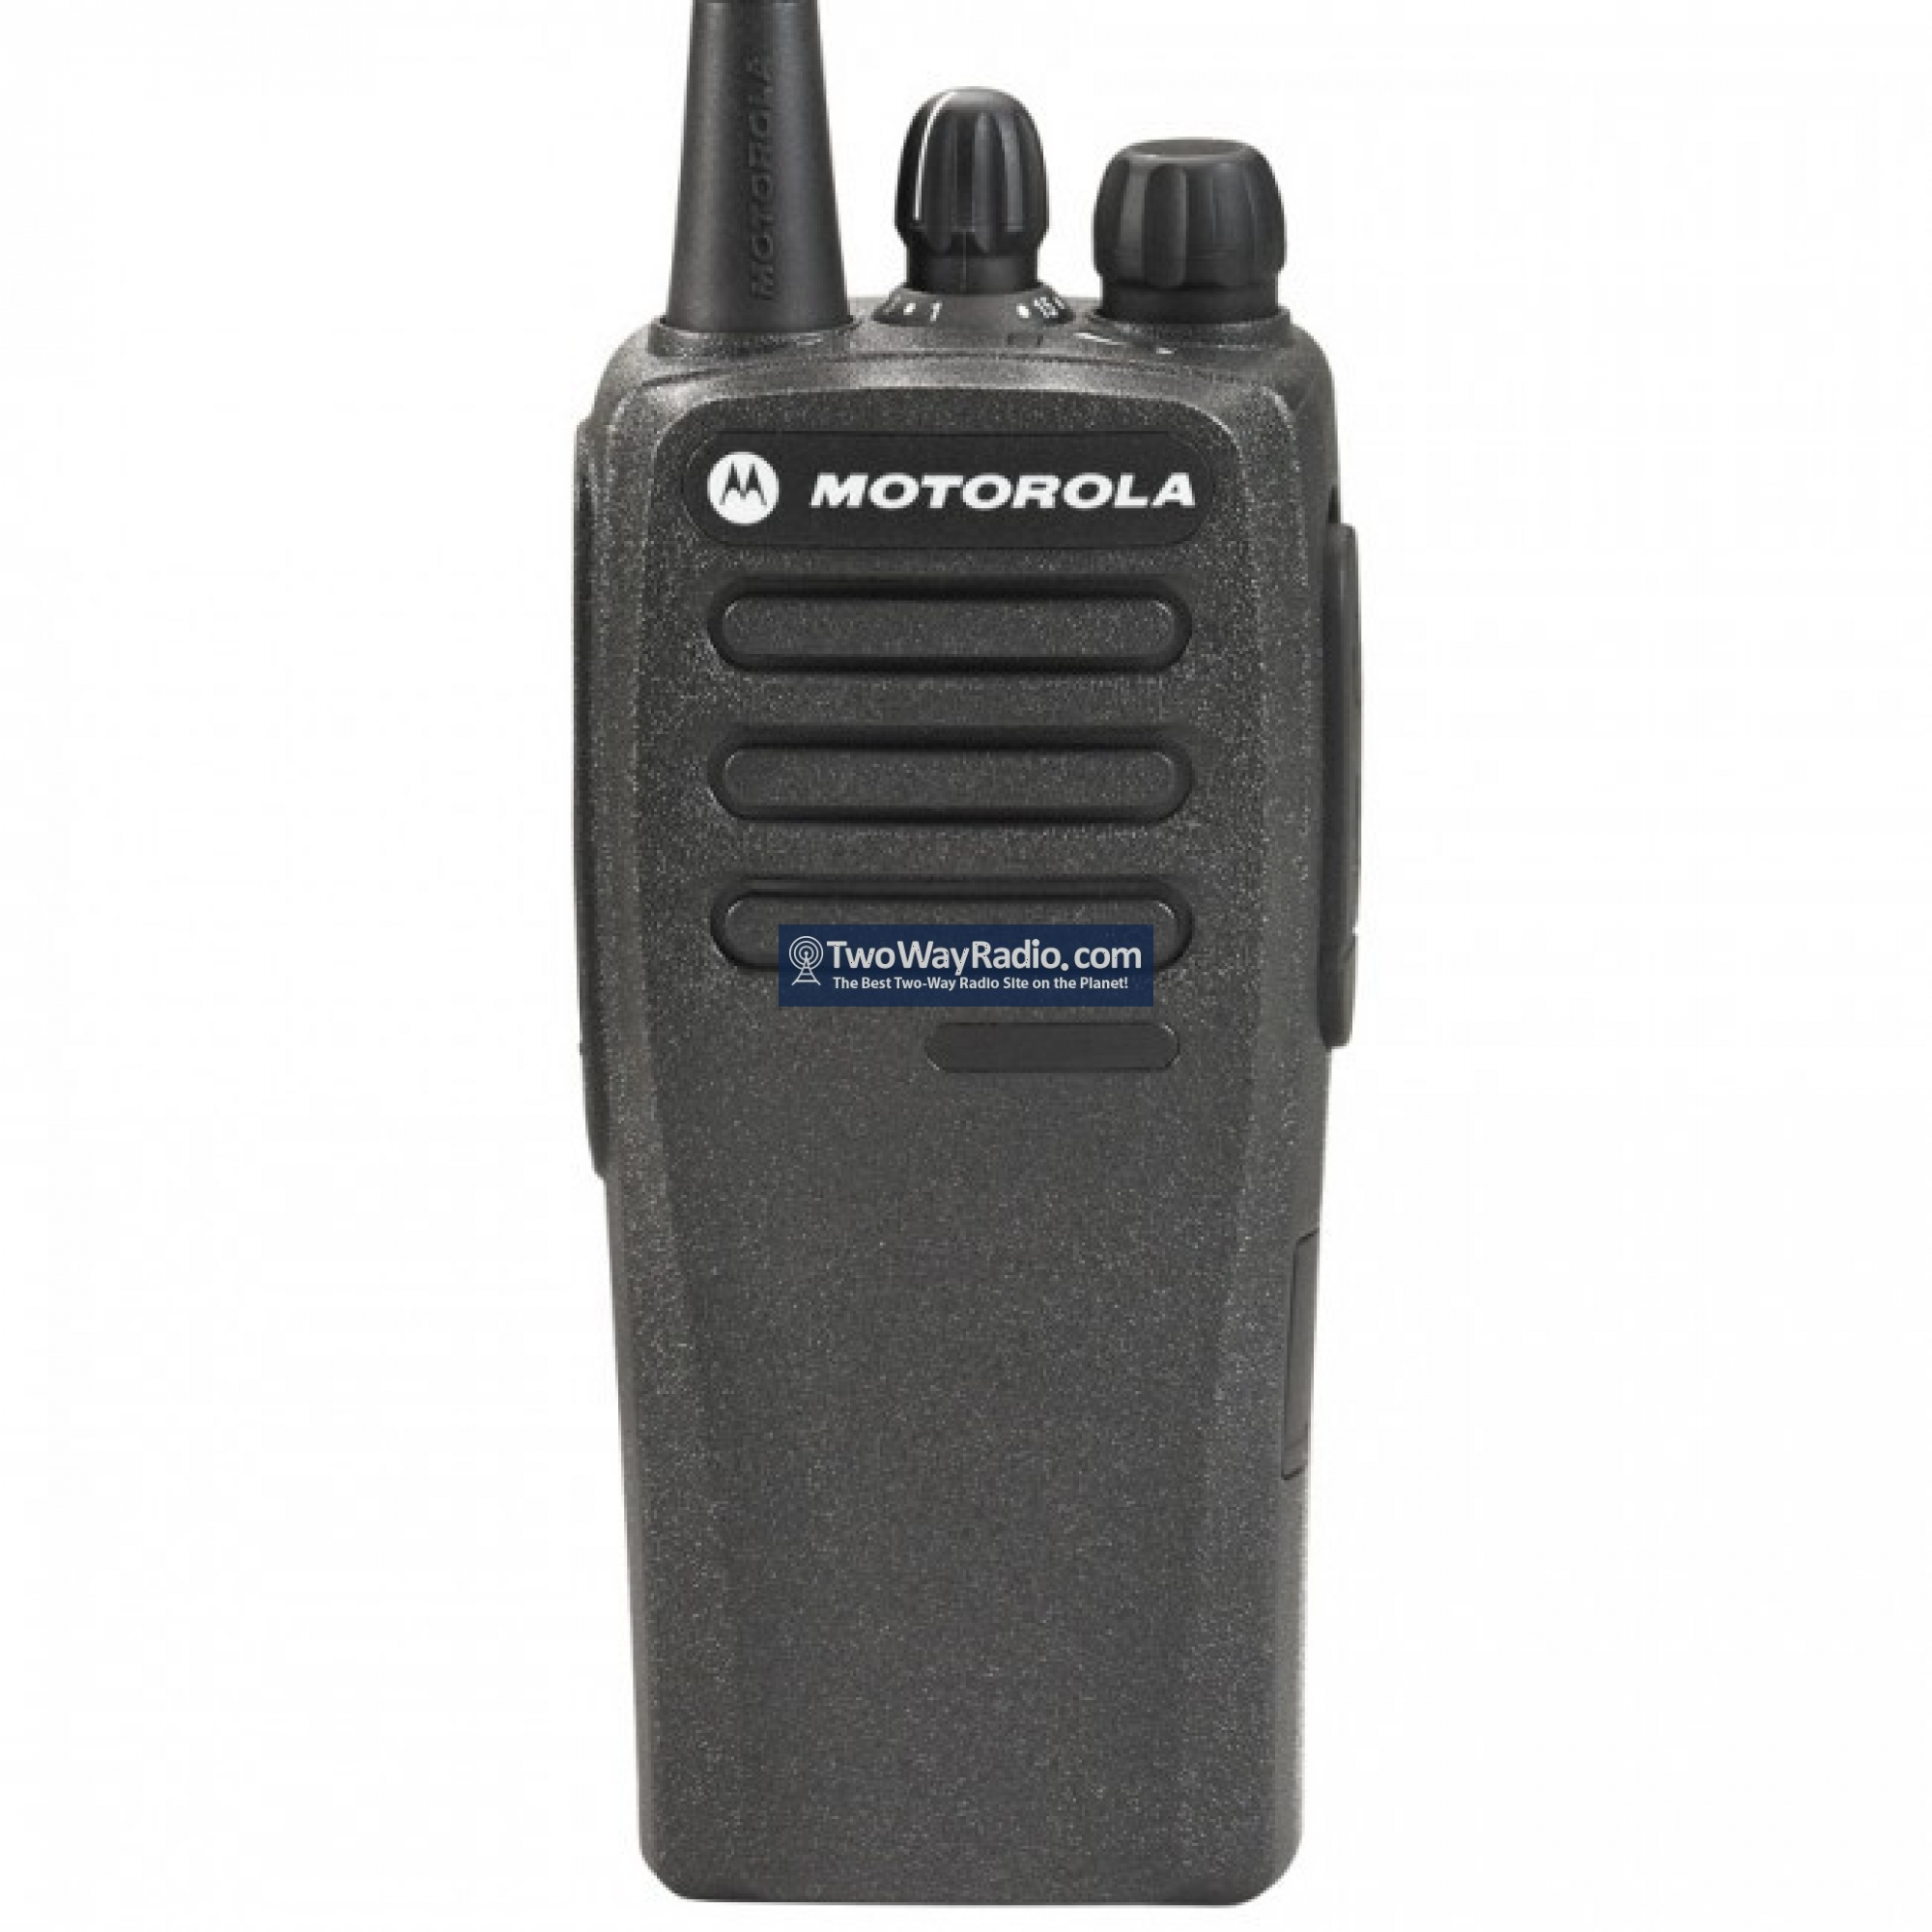 Motorola cp150 cp200 detailed sm service manual download.